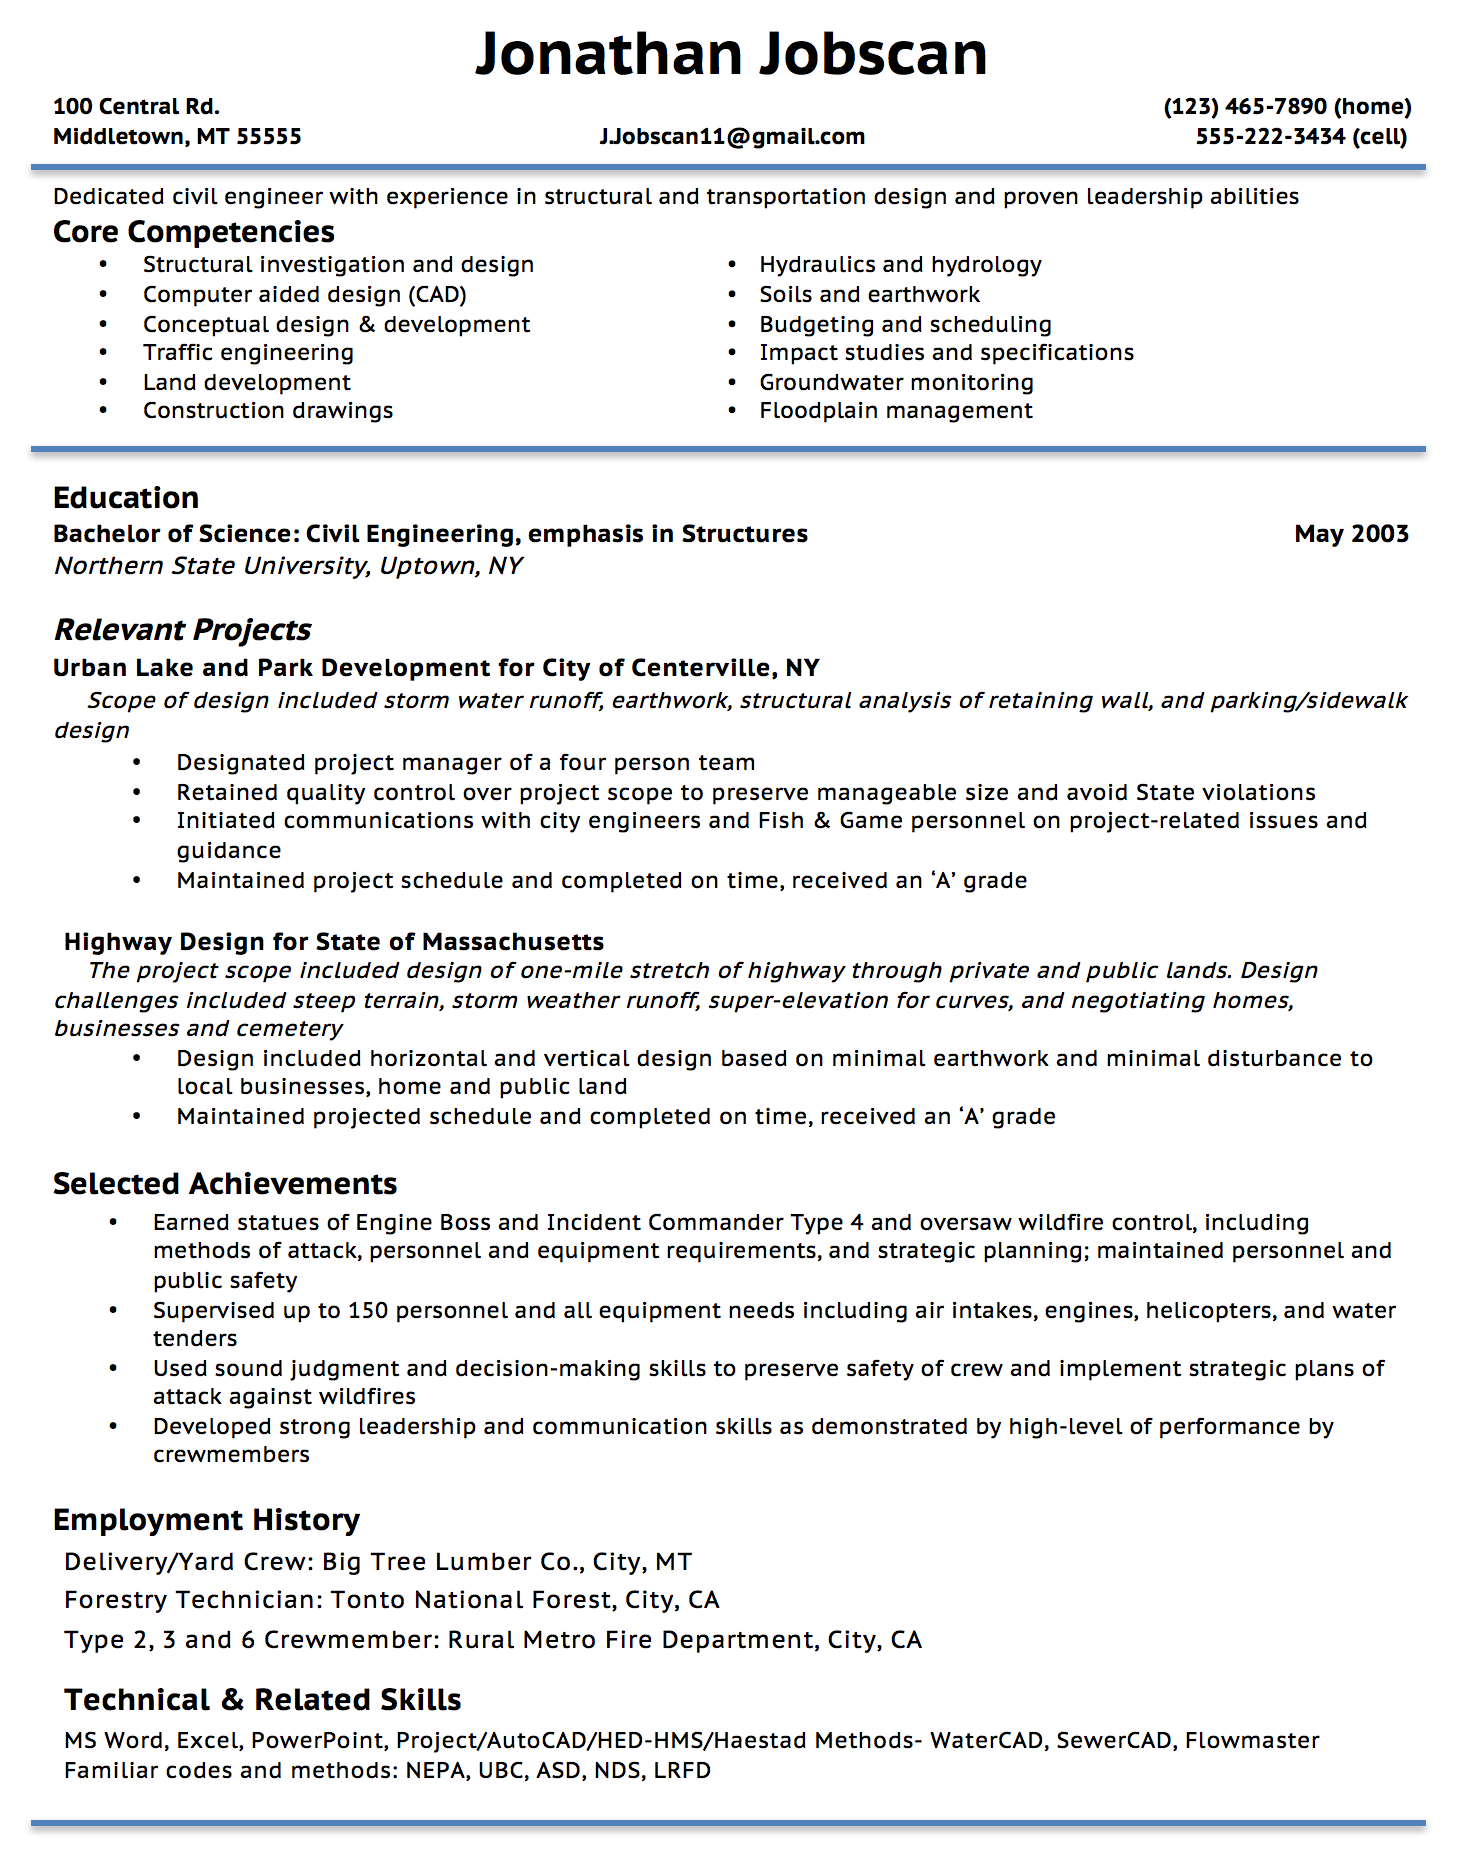 Picnictoimpeachus  Scenic Resume Writing Guide  Jobscan With Lovely Example Of A Functional Resume Format With Cute Emailing A Resume And Cover Letter Also Bootstrap Resume Template In Addition Resume Follow Up Letter And Data Entry Resume Objective As Well As Update Your Resume Additionally Resumes By Design From Jobscanco With Picnictoimpeachus  Lovely Resume Writing Guide  Jobscan With Cute Example Of A Functional Resume Format And Scenic Emailing A Resume And Cover Letter Also Bootstrap Resume Template In Addition Resume Follow Up Letter From Jobscanco